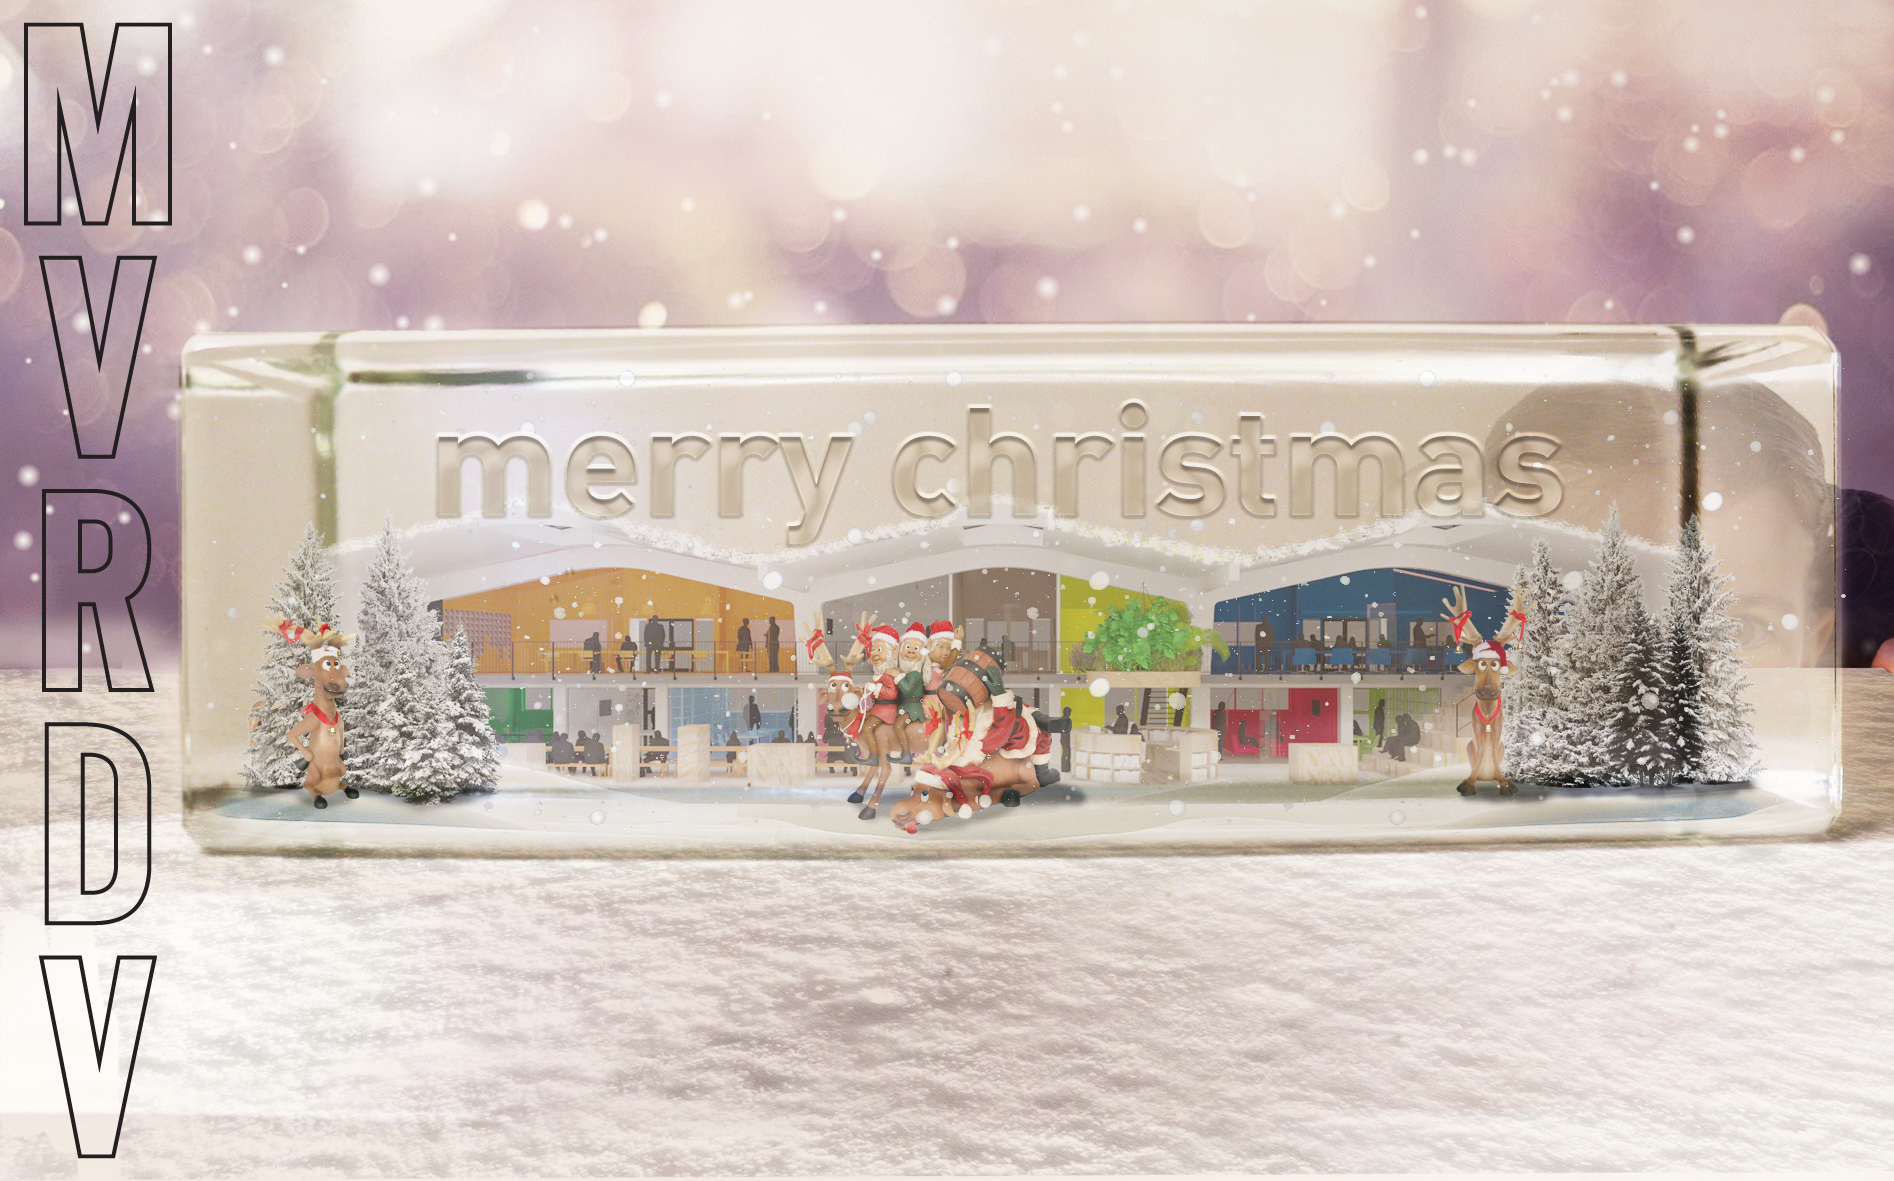 mvrdv wishes you a merry christmas and a happy new year